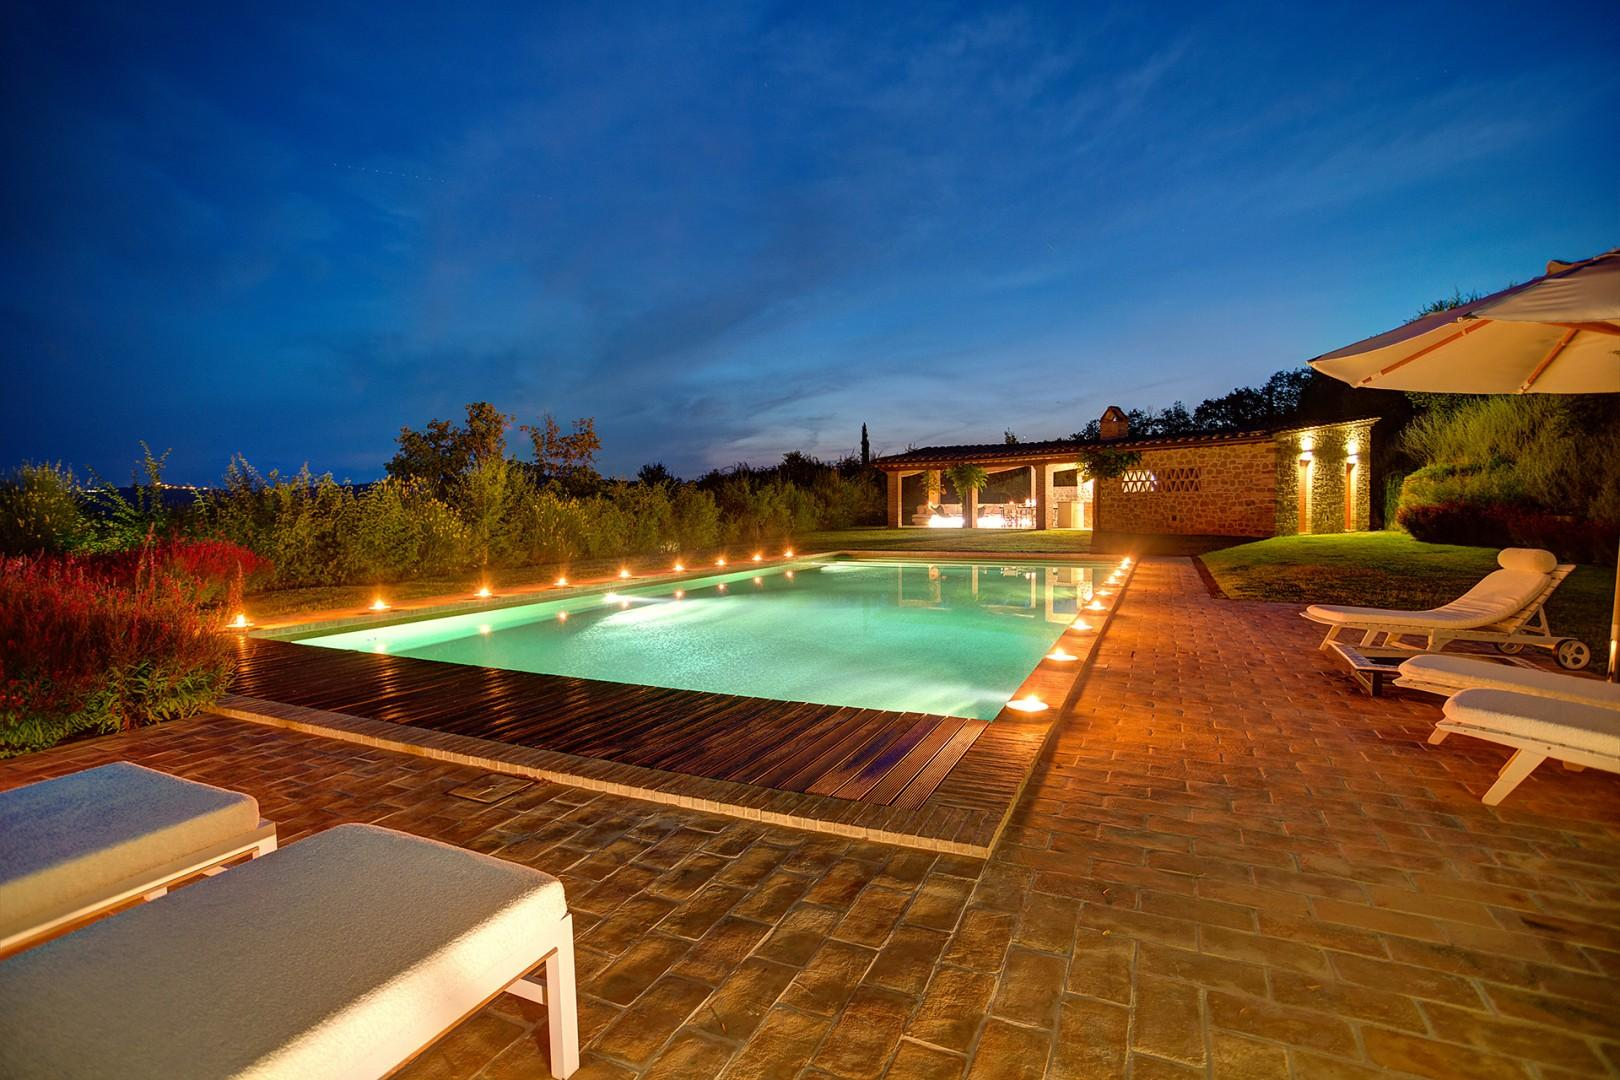 Beautiful Villa Landolfo pool beckons for relaxing summer days and nights.